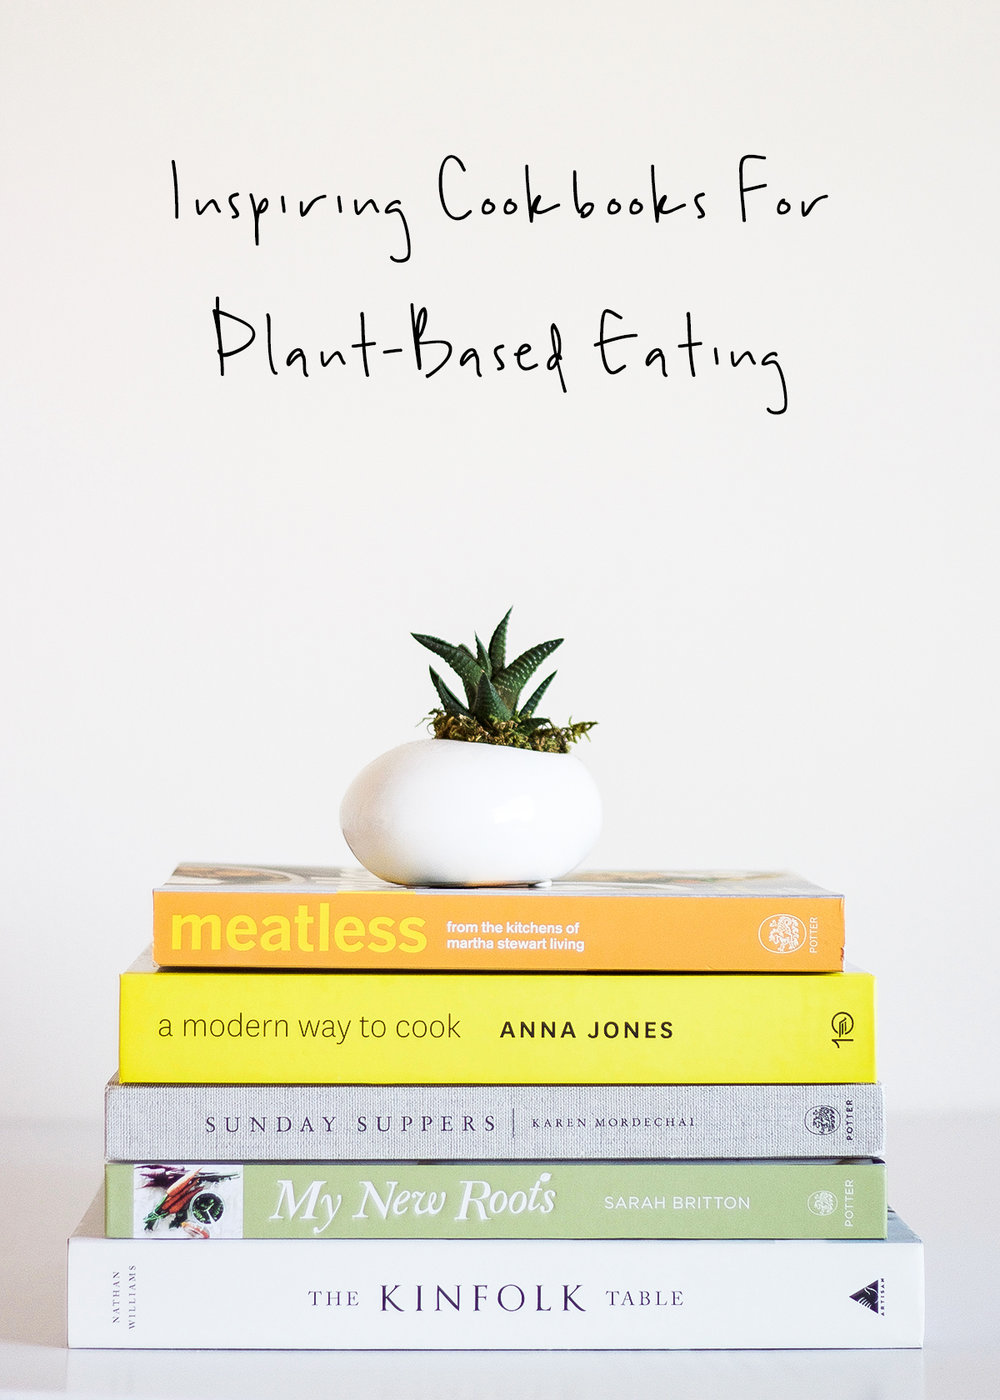 Inspiring Cookbooks For Plant-Based Eating | A Girl, Obsessed